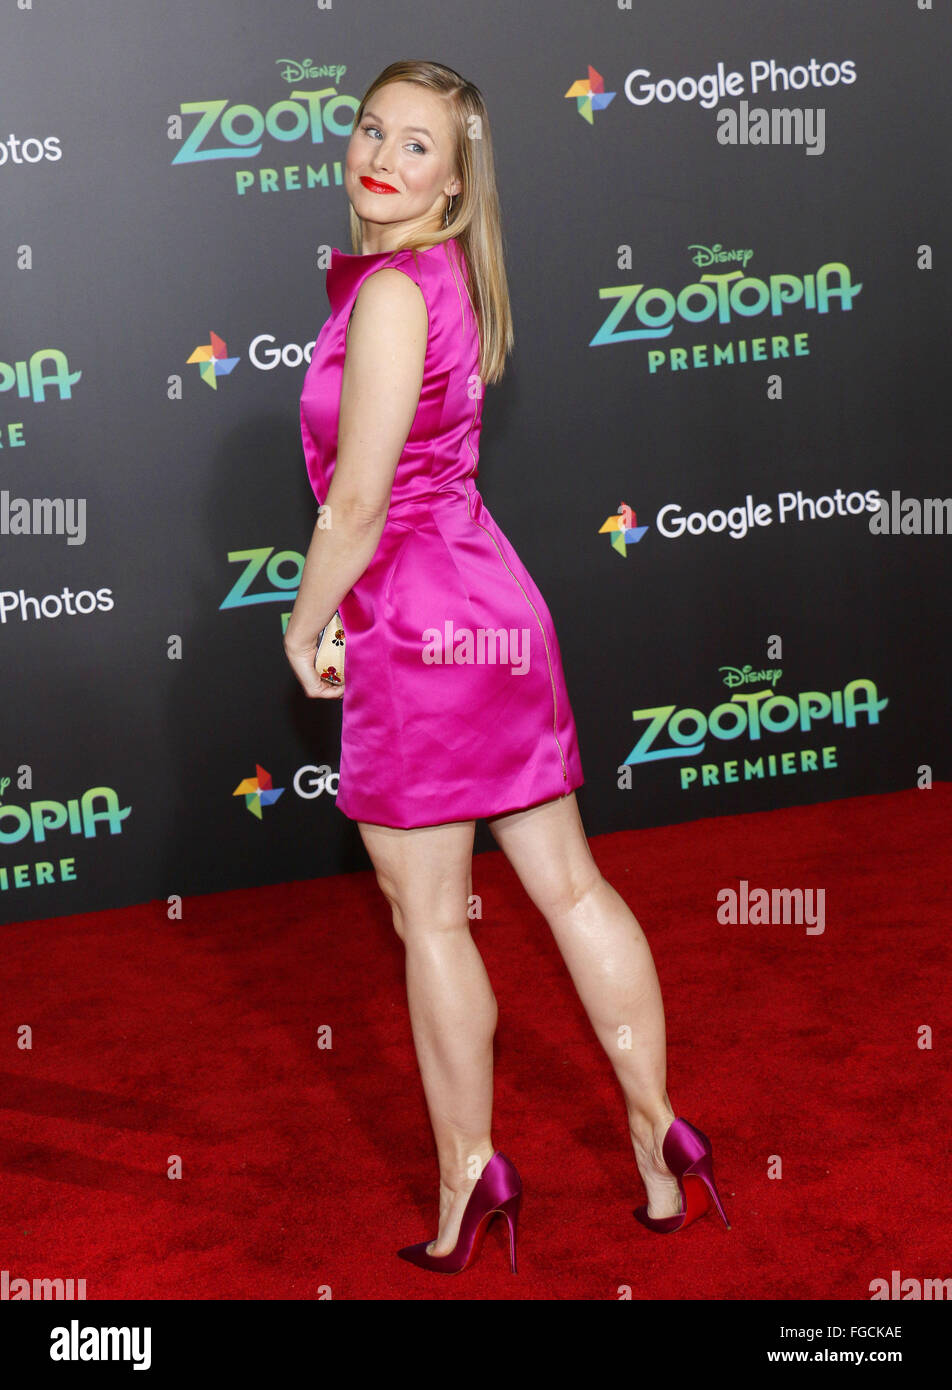 Kristen Bell At The Los Angeles Premiere Of Zootopia